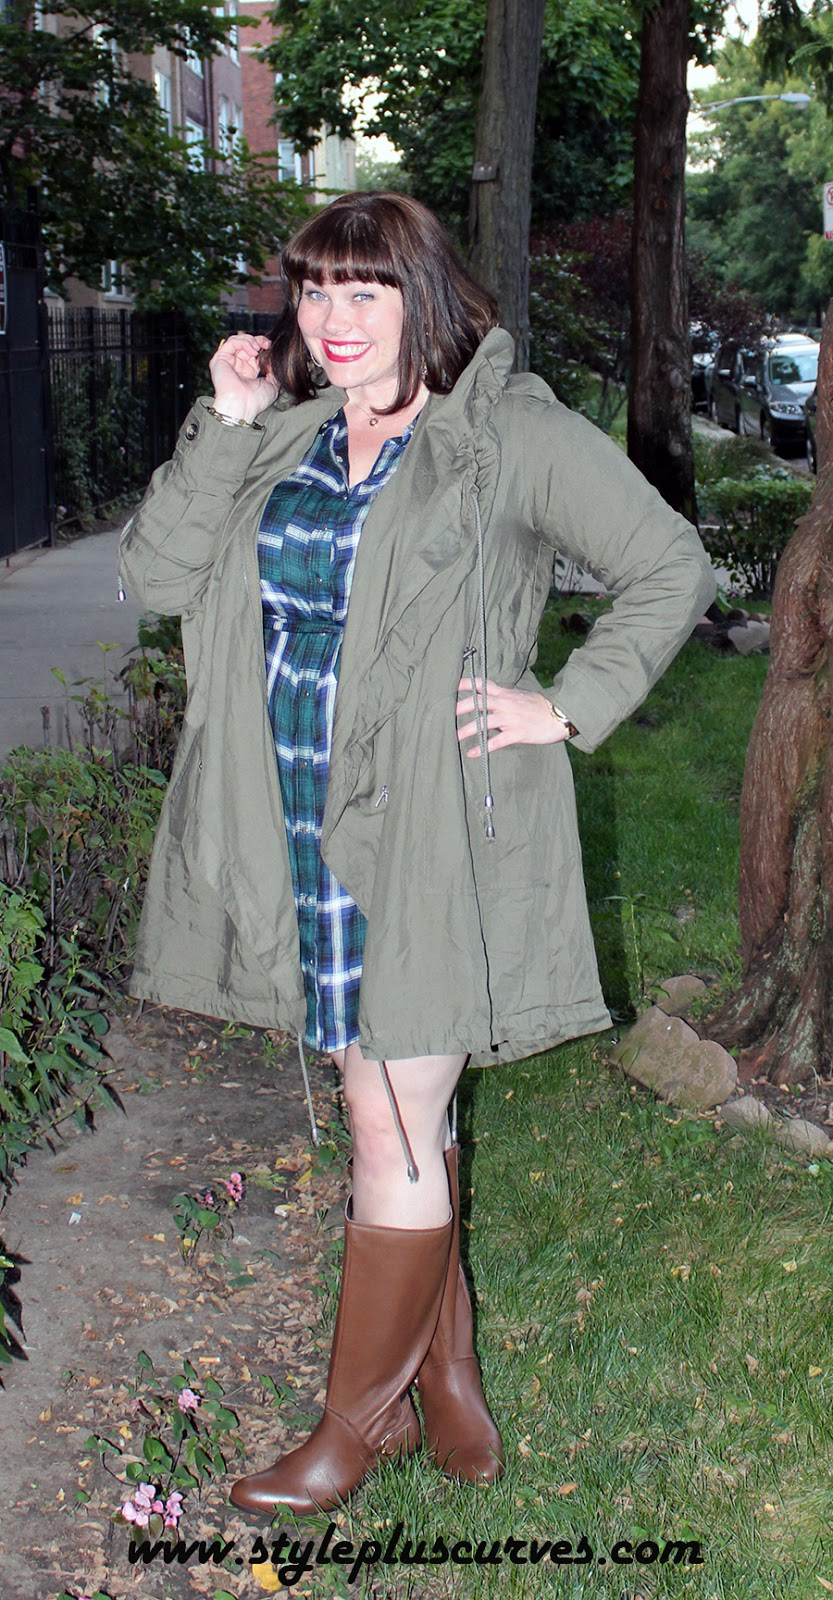 Amber from Style Plus Curves in Yours Clothing Plaid Tunic for Fall Fashion